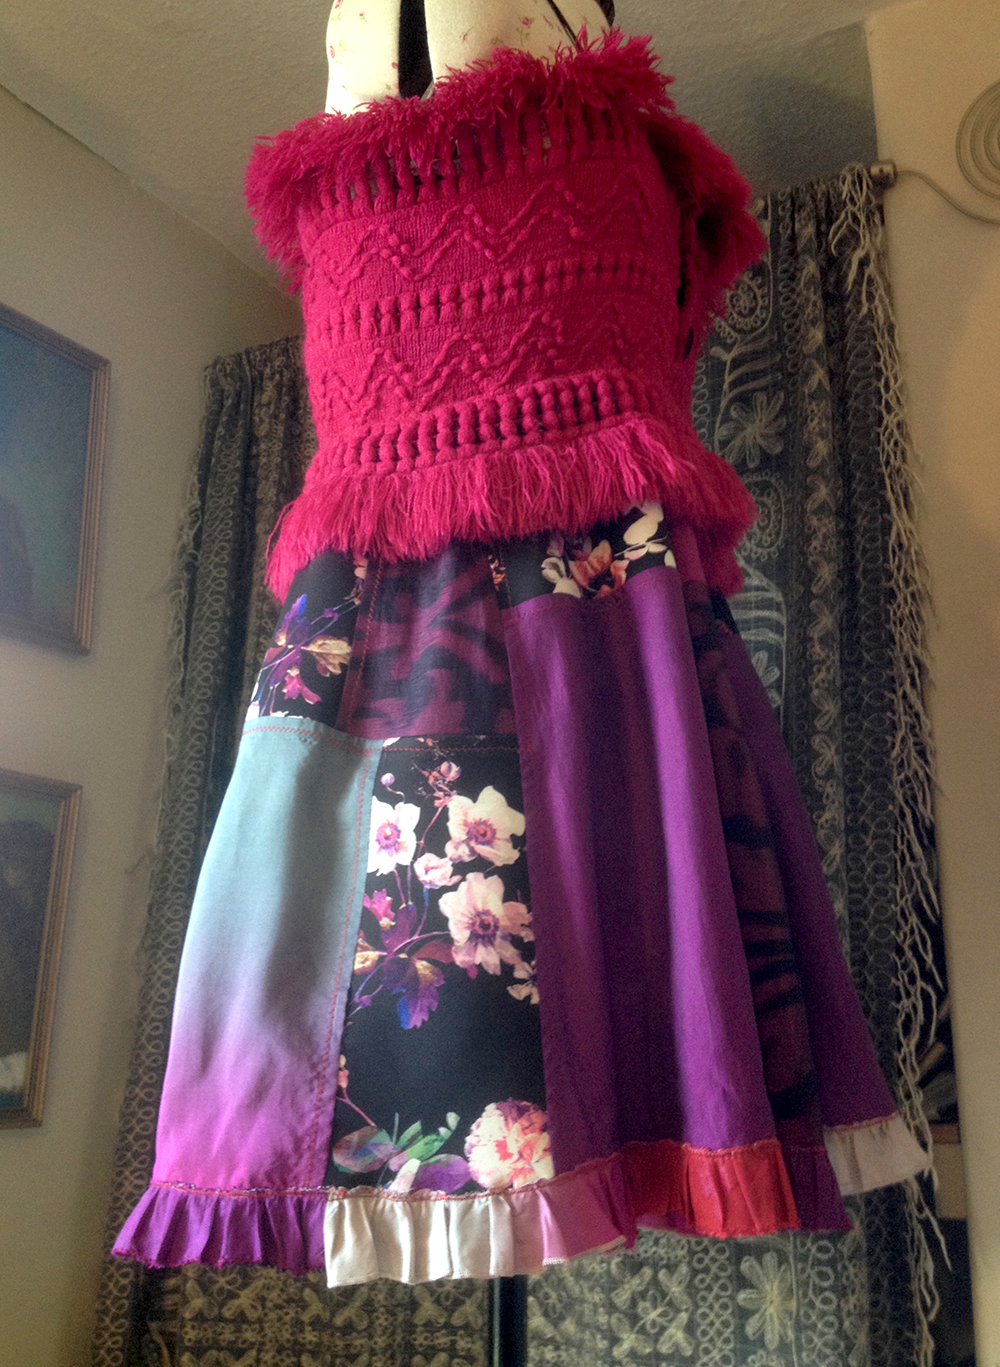 Cherry B, RIGHT side view, with hem frill, indoors, right side view.png